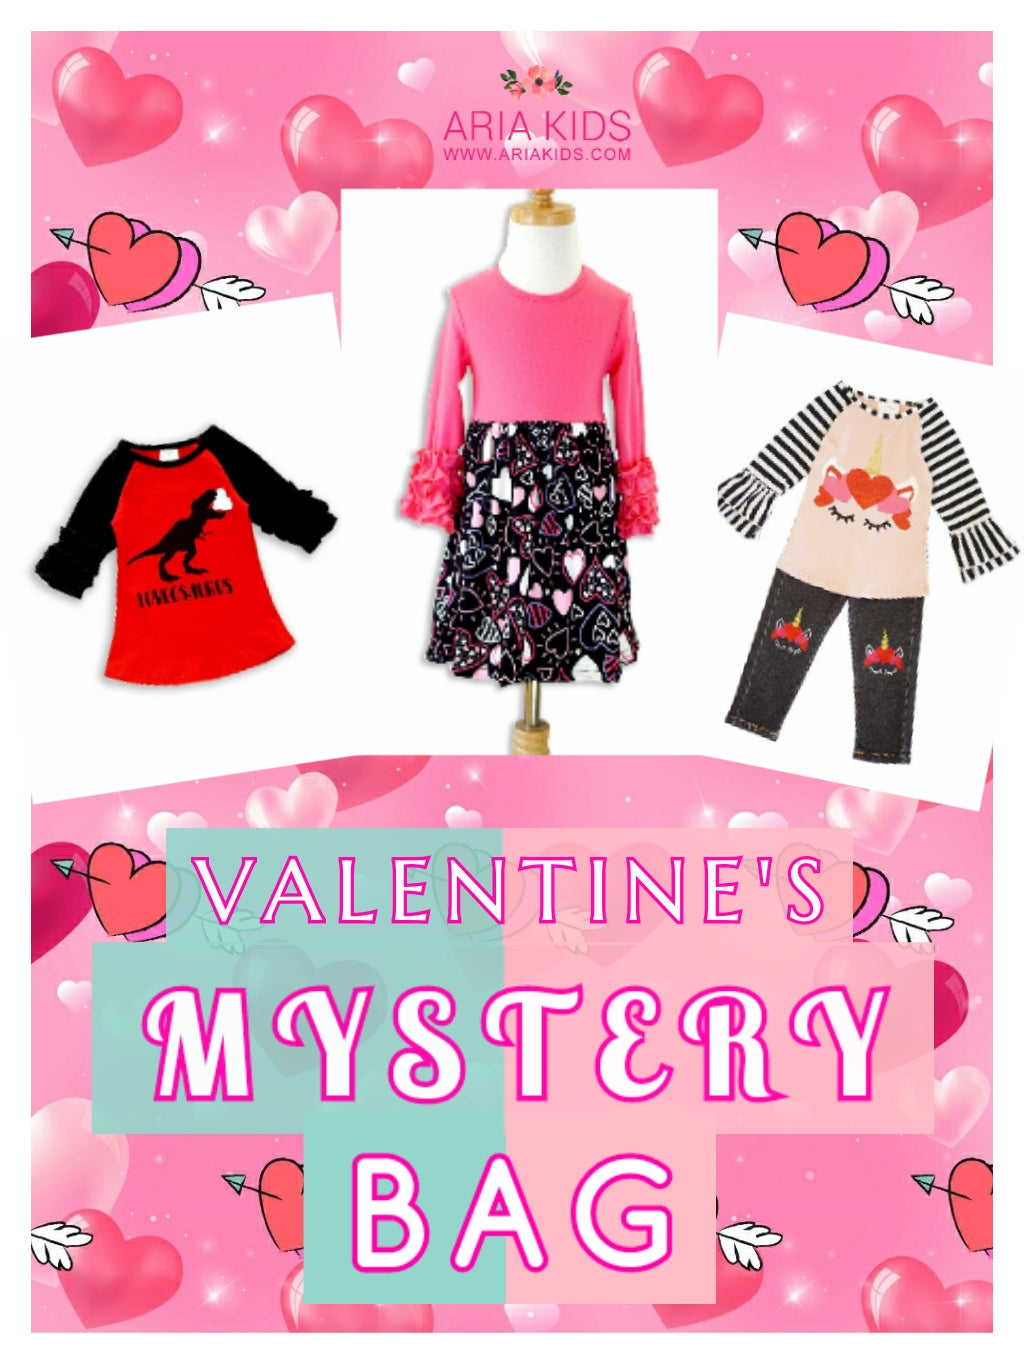 VALENTINES DAY MYSTERY BAG - 2 Outfits (FREE Shipping) - ARIA KIDS